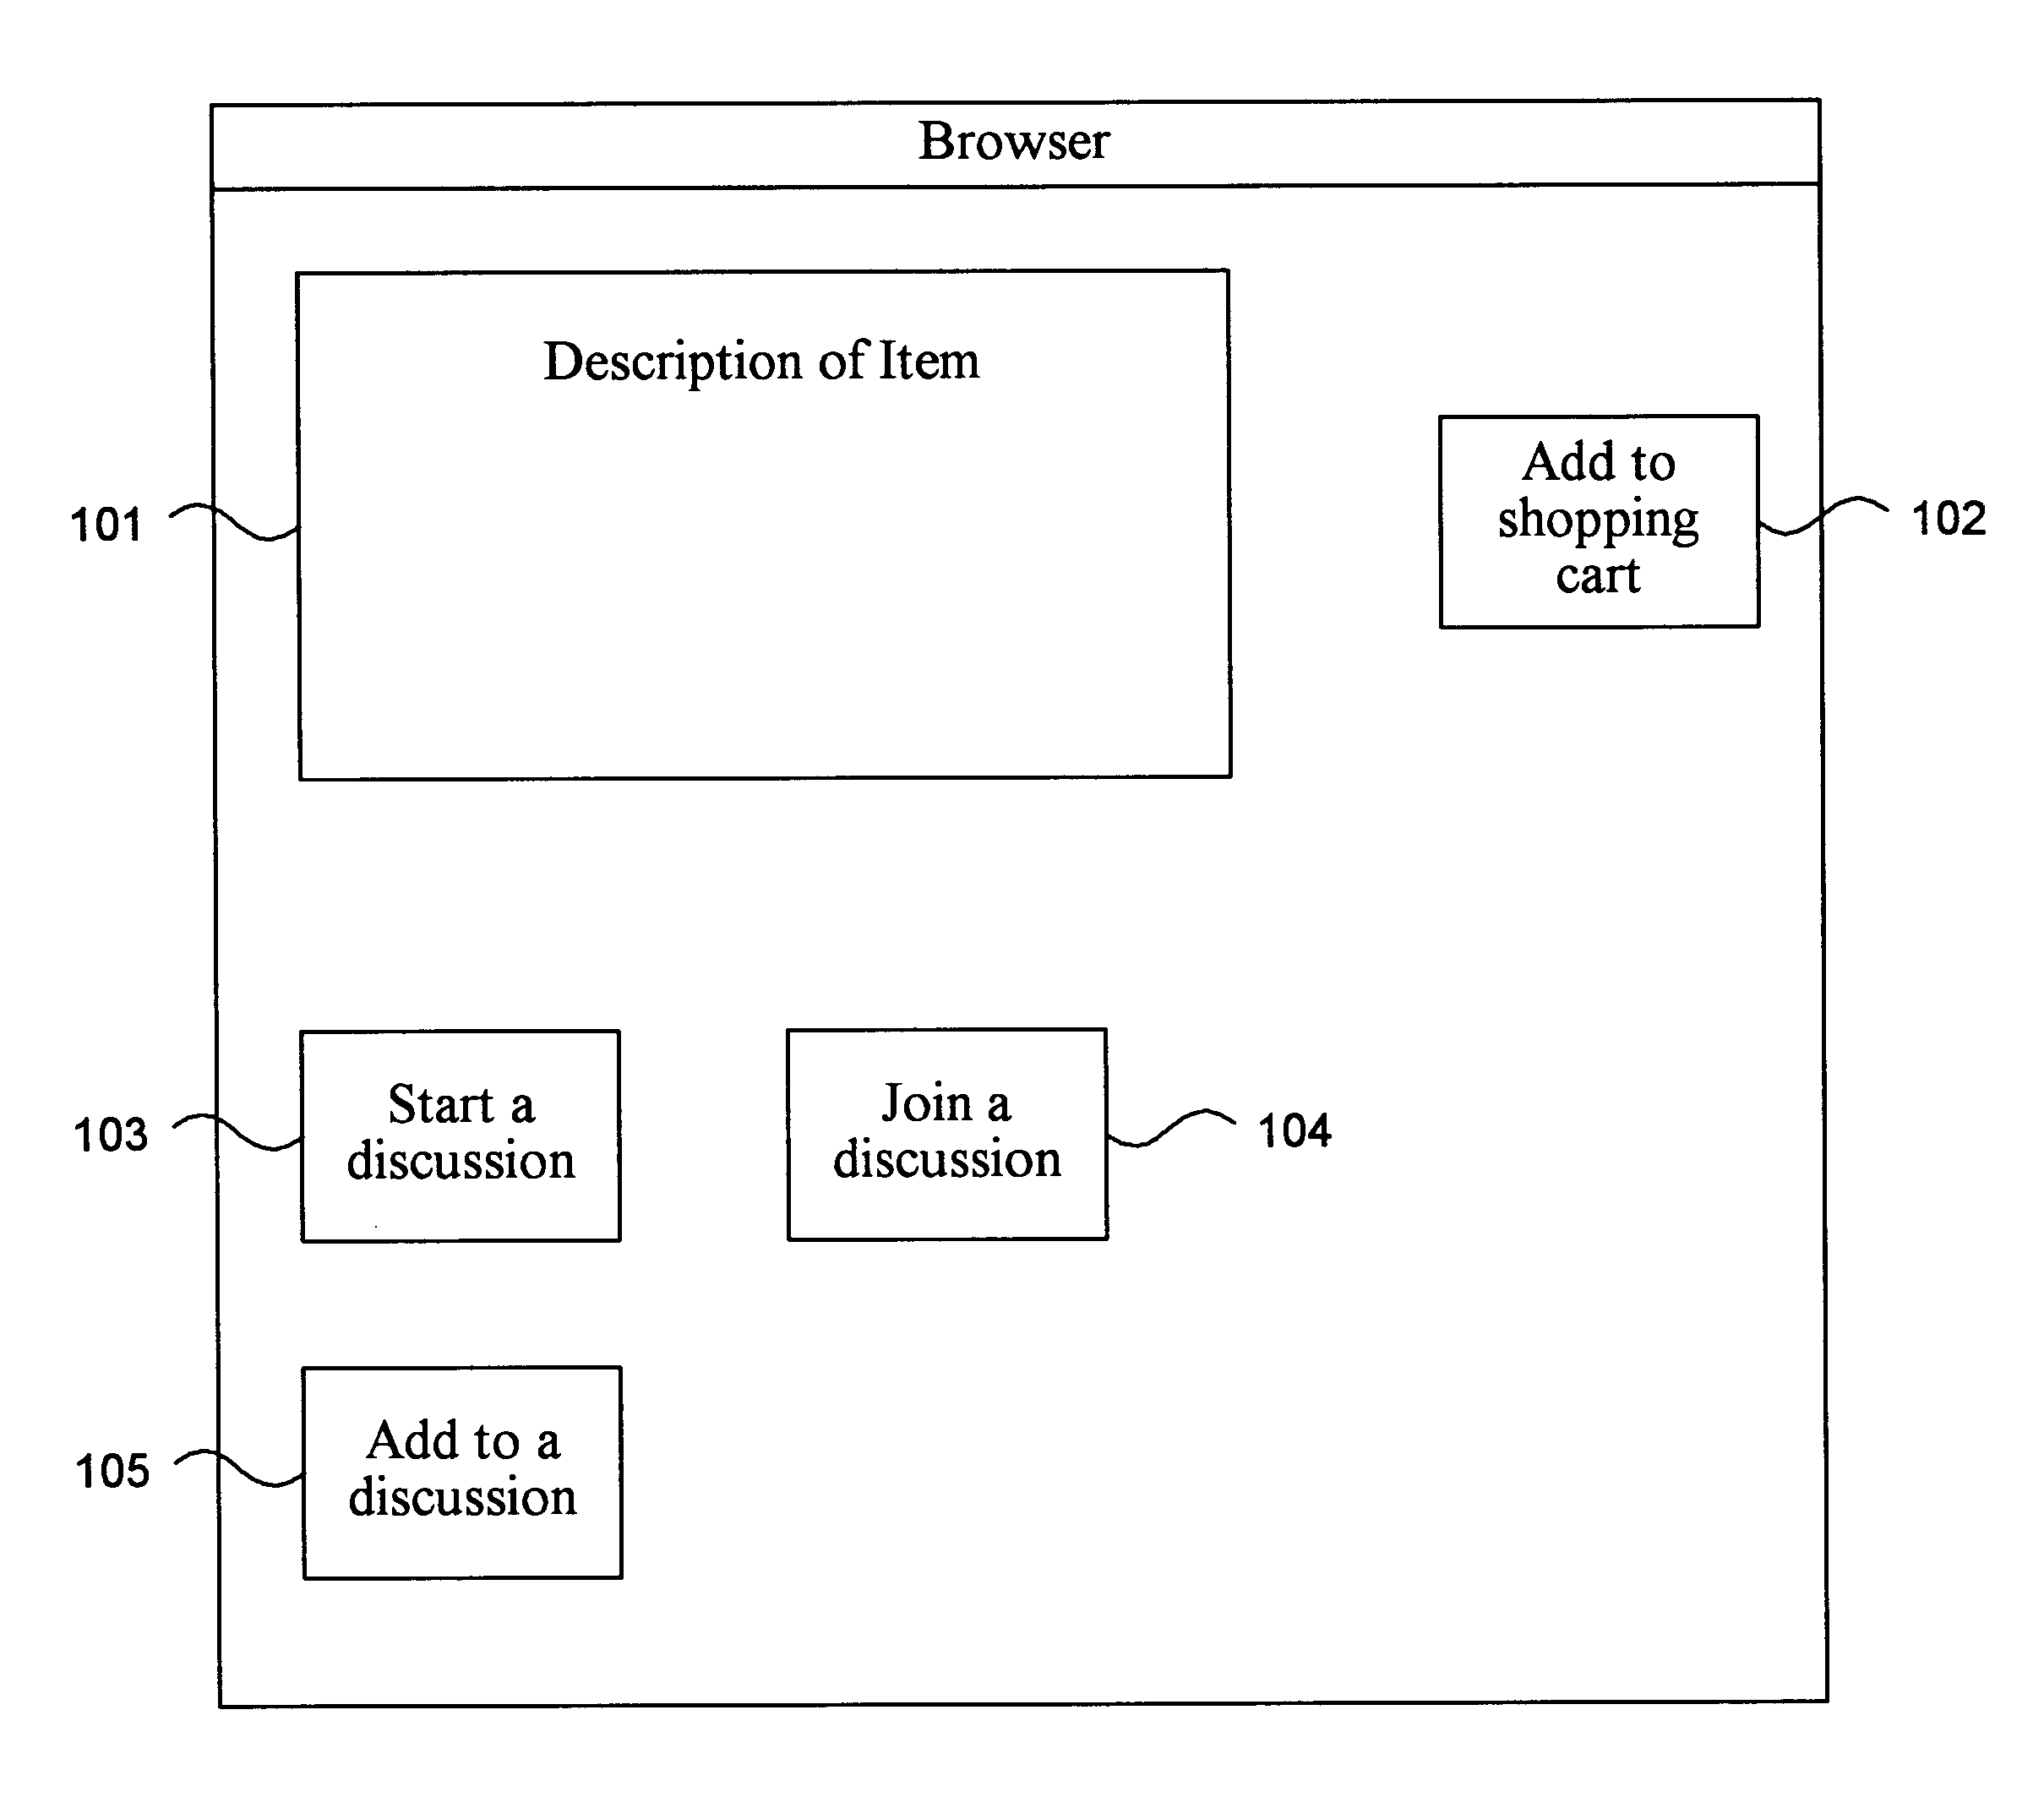 Amazon  patent by Jeff Bezos from 2003 for method and system for conducting a discussion relating to an item - US6525747